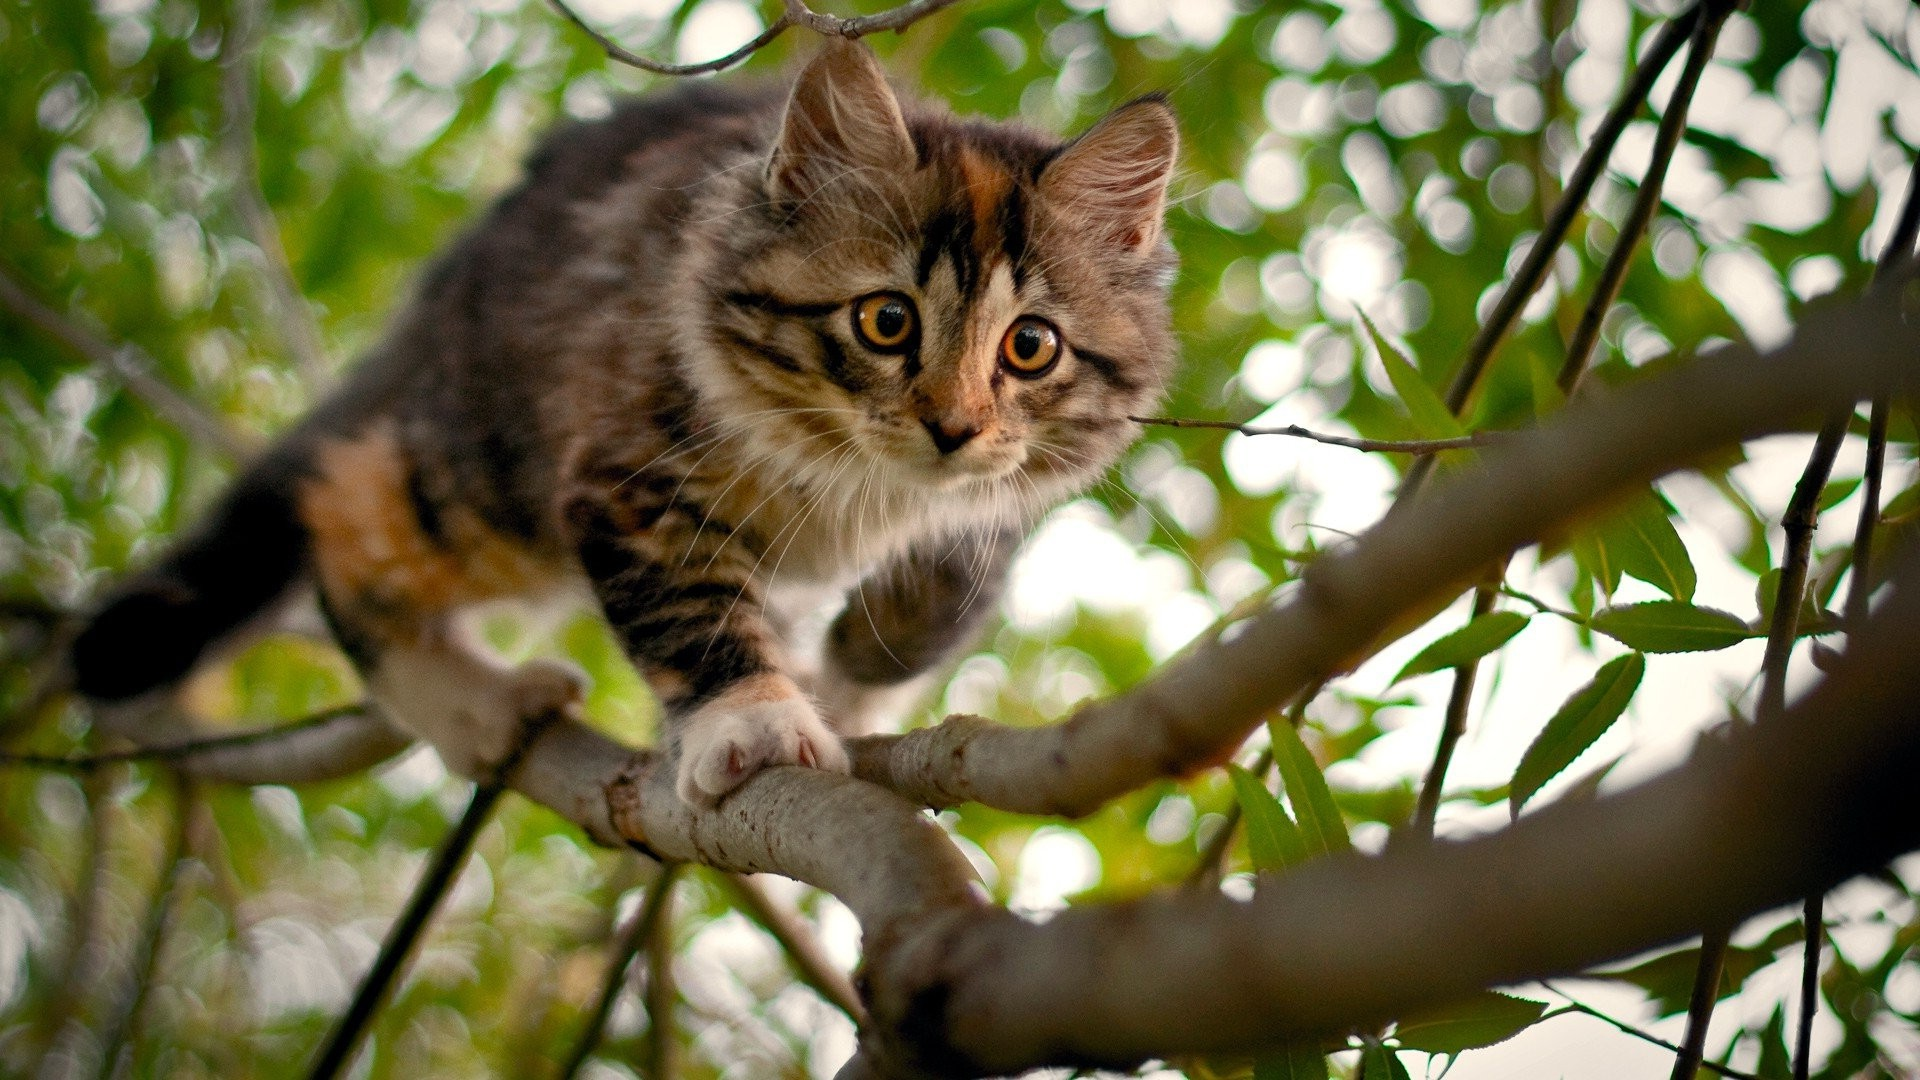 Cute Bengal Wallpapers Hd 1366x768 Nature Cat Wallpapers Hd Desktop And Mobile Backgrounds